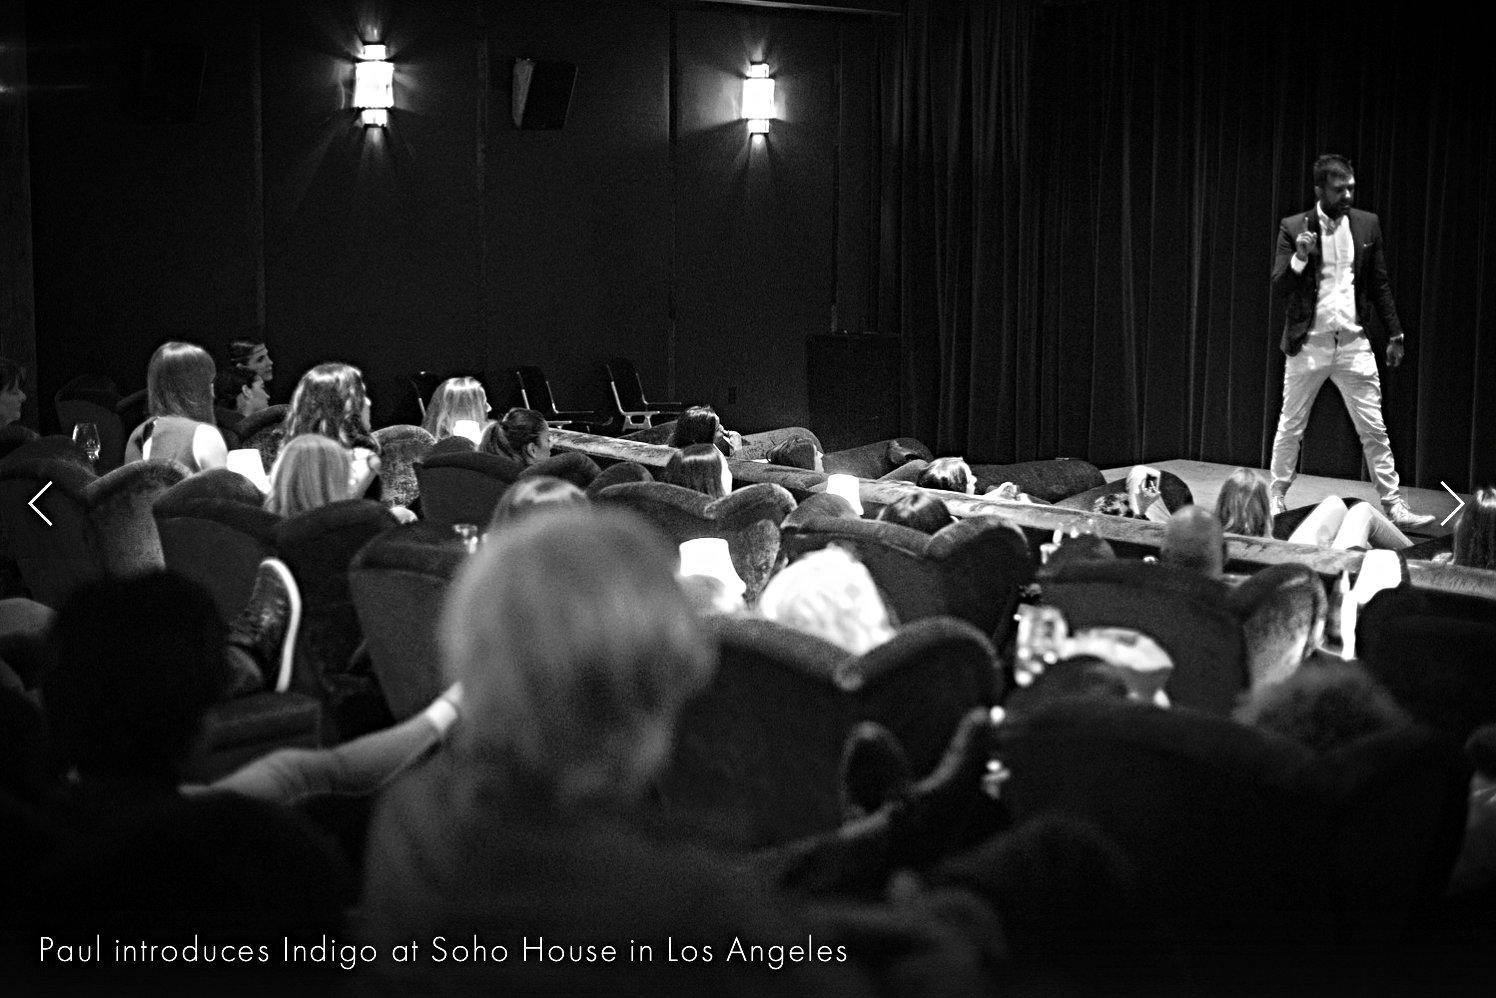 Exclusive Indigo screening at Soho House - West Hollywood.  - At the members club Soho House, West Hollywood in Los Angeles an invited audience gathered for the first screening of Indigo. In the private cinema people from the industry was introduced to film by director Paul Jerndal who talked about the importance of reflecting about your inside.